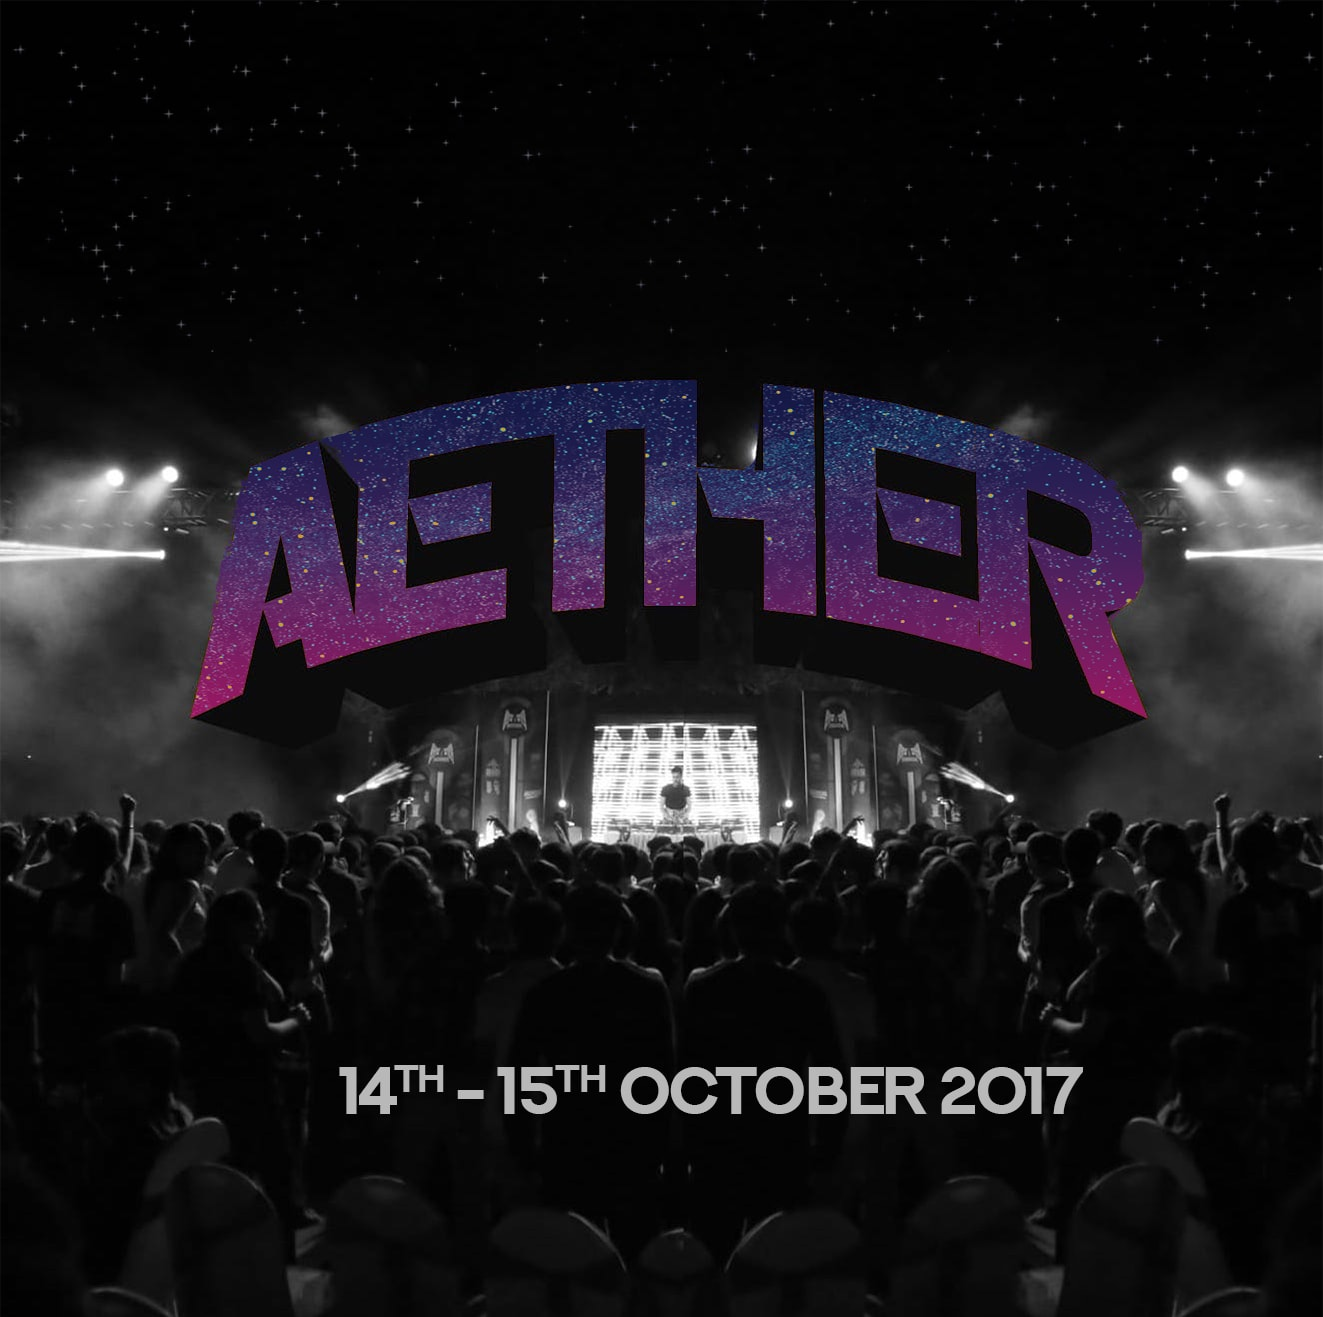 Aether 2k17